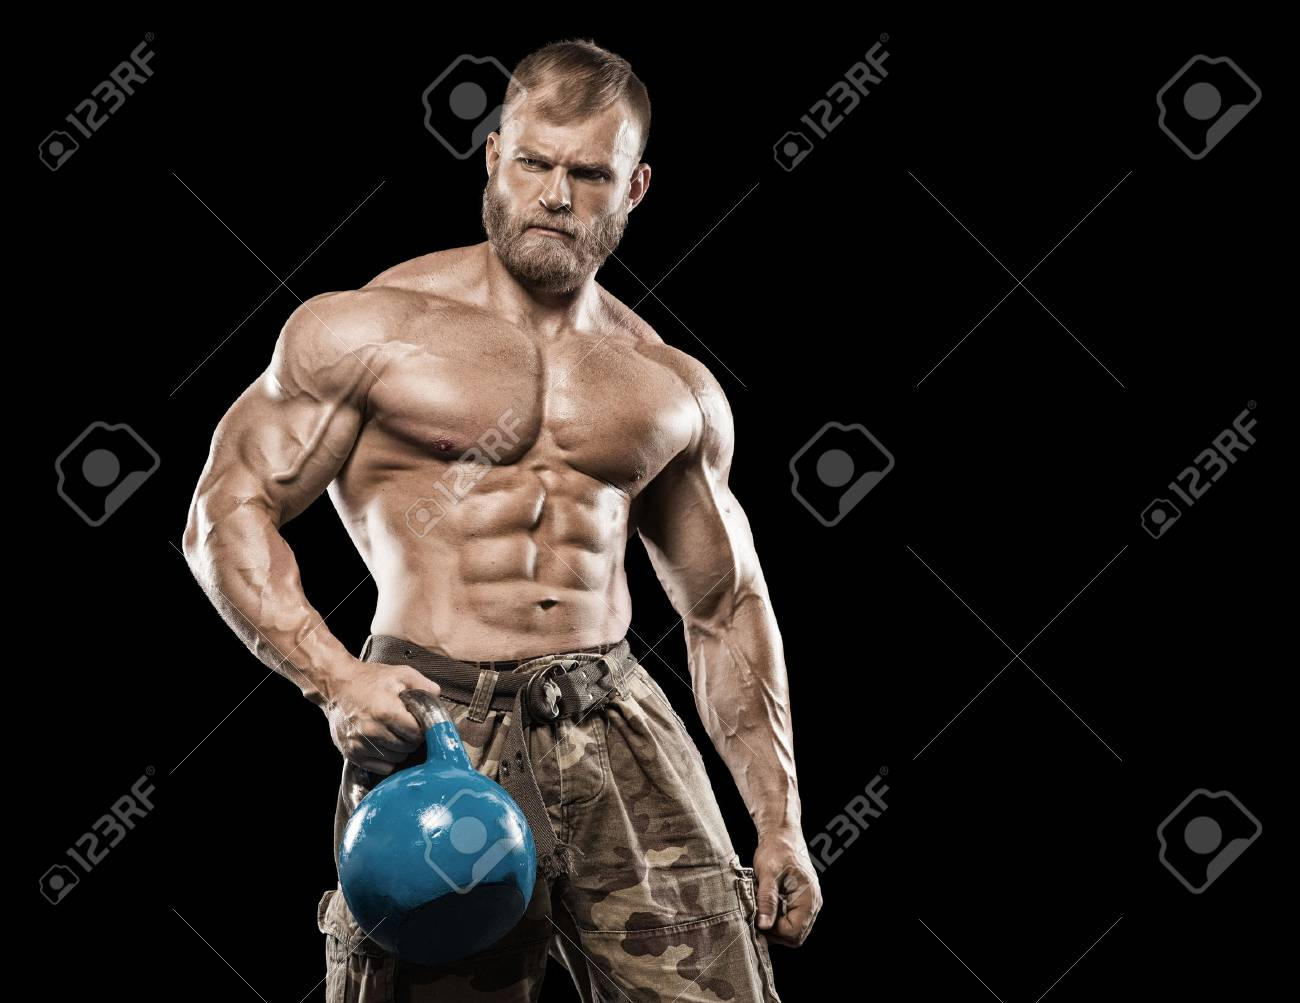 Muscular athletic bodybuilder fitness model posing after exercises